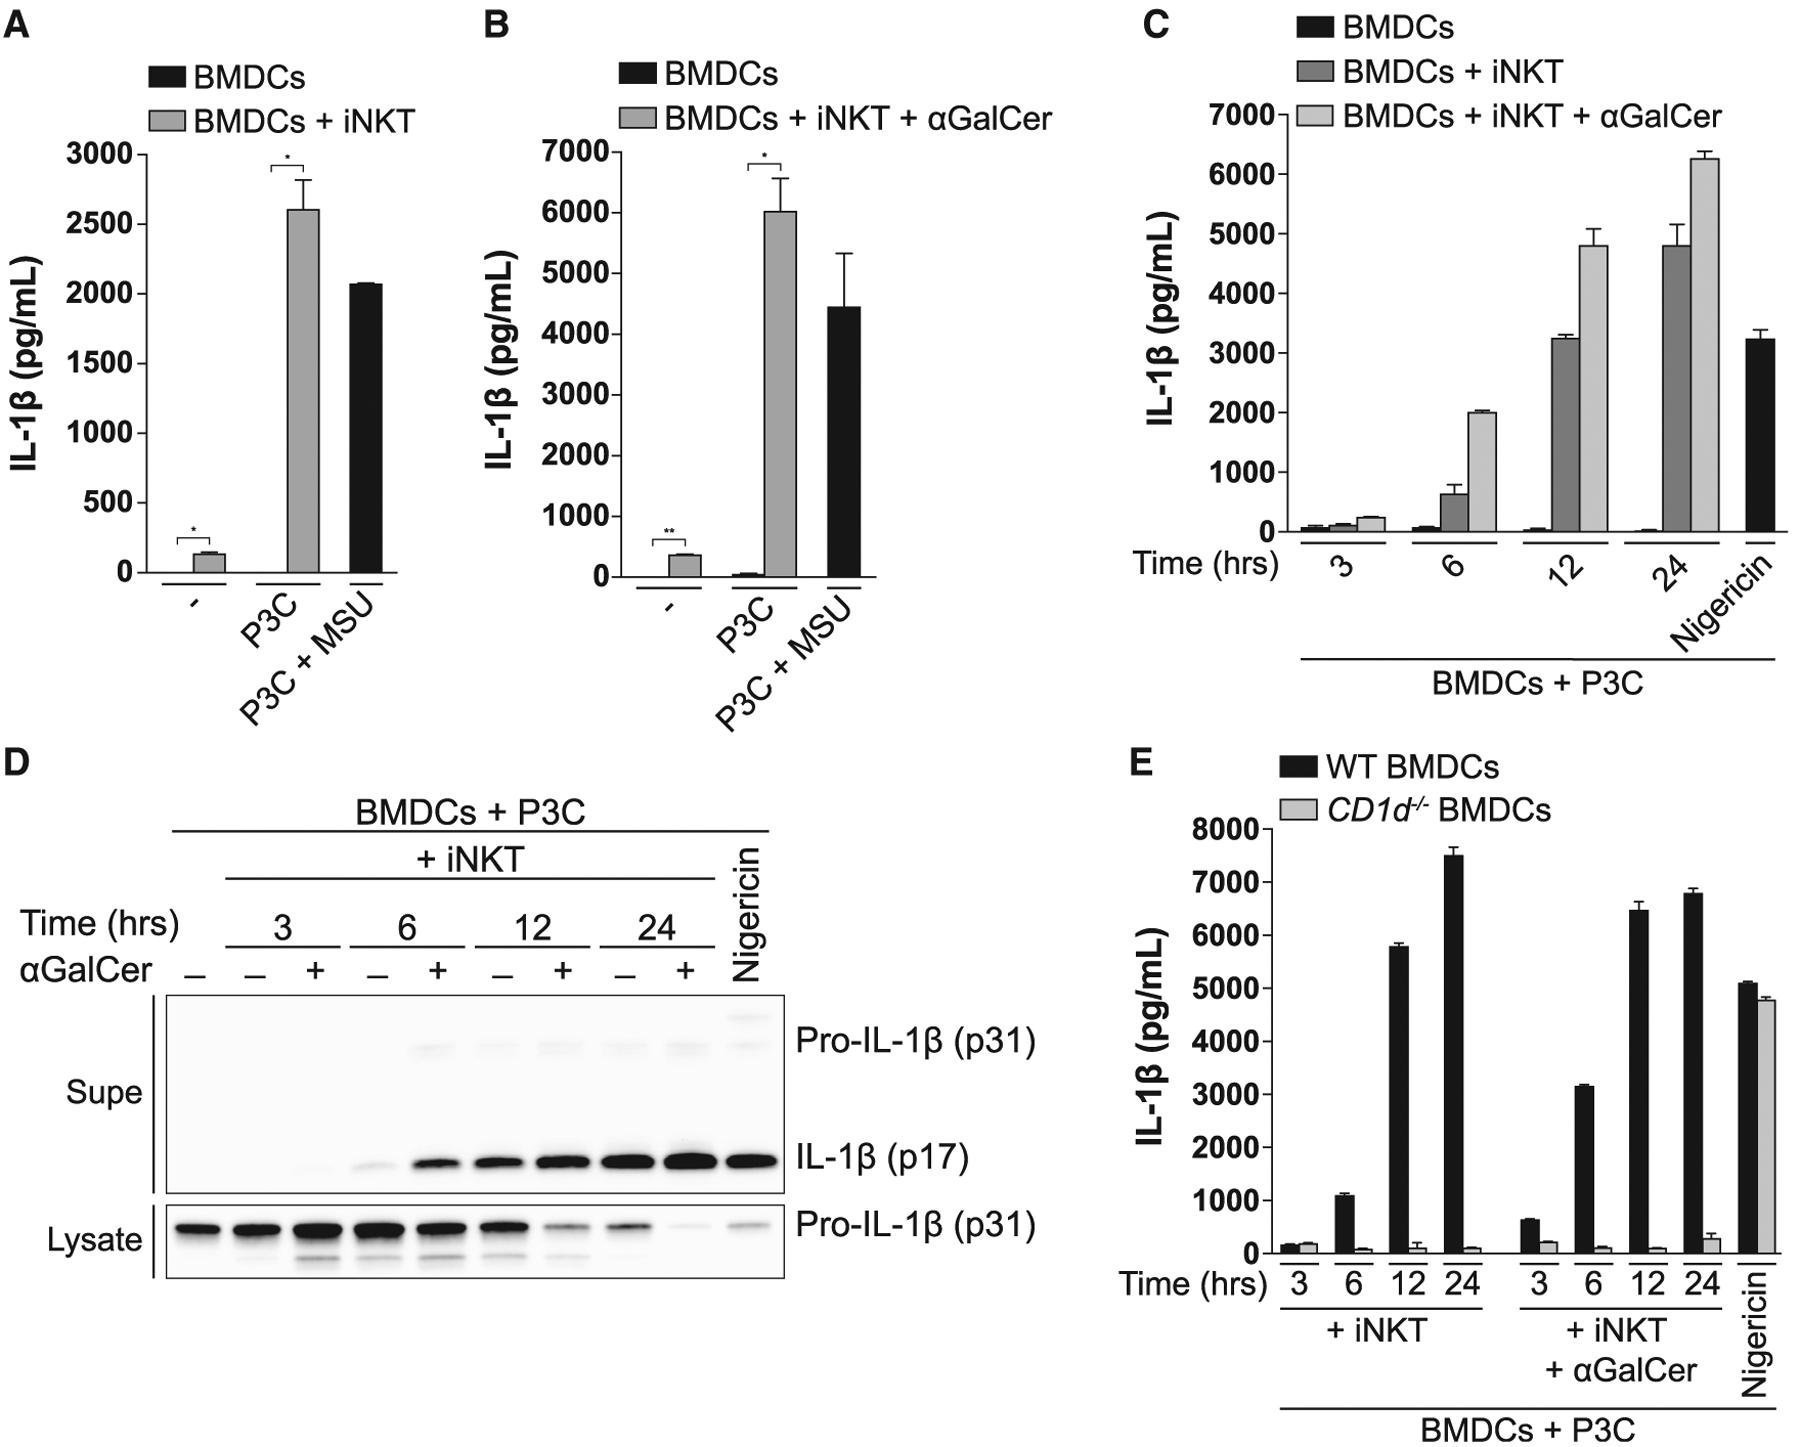 iNKT Cells Induce IL-1β Secretion by <t>BMDCs</t> in a CD1d-Dependent Manner (A and B) BMDCs were left unprimed or primed with Pam3CSK4 (P3C; 0.5 μg/mL) for 24 h and subsequently co-cultured with iNKT cells for 24 h in the (A) absence or (B) presence of αGalCer (50 ng/mL). IL-1β release was quantified by ELISA. As a control, BMDCs were primed with P3C for 4 h, followed by 6-h stimulation with <t>MSU</t> (100 μg/mL). The same concentrations of P3C, αGalCer, and MSU were used throughout all experiments. (C and D) P3C-primed BMDCs were cultured alone or with iNKT cells for the indicated times in the presence or absence of αGalCer. IL-1β release was quantified by ELISA (C), and cell-associated and extracellular IL-1β were analyzed by immunoblot (D). As a control, BMDCs were primed with P3C for 4 h, followed by 1-h stimulation with nigericin (10 μM). (E) P3C-primed BMDCs from WT and CD1d −/− mice were co-cultured with iNKT cells for the indicated times in the absence or presence of αGalCer. IL-1β release was quantified by ELISA. P3C-primed BMDCs stimulated with nigericin were used as a control. Error bars represent mean + SD of triplicate samples. Each panel is representative of at least three different experiments. *p